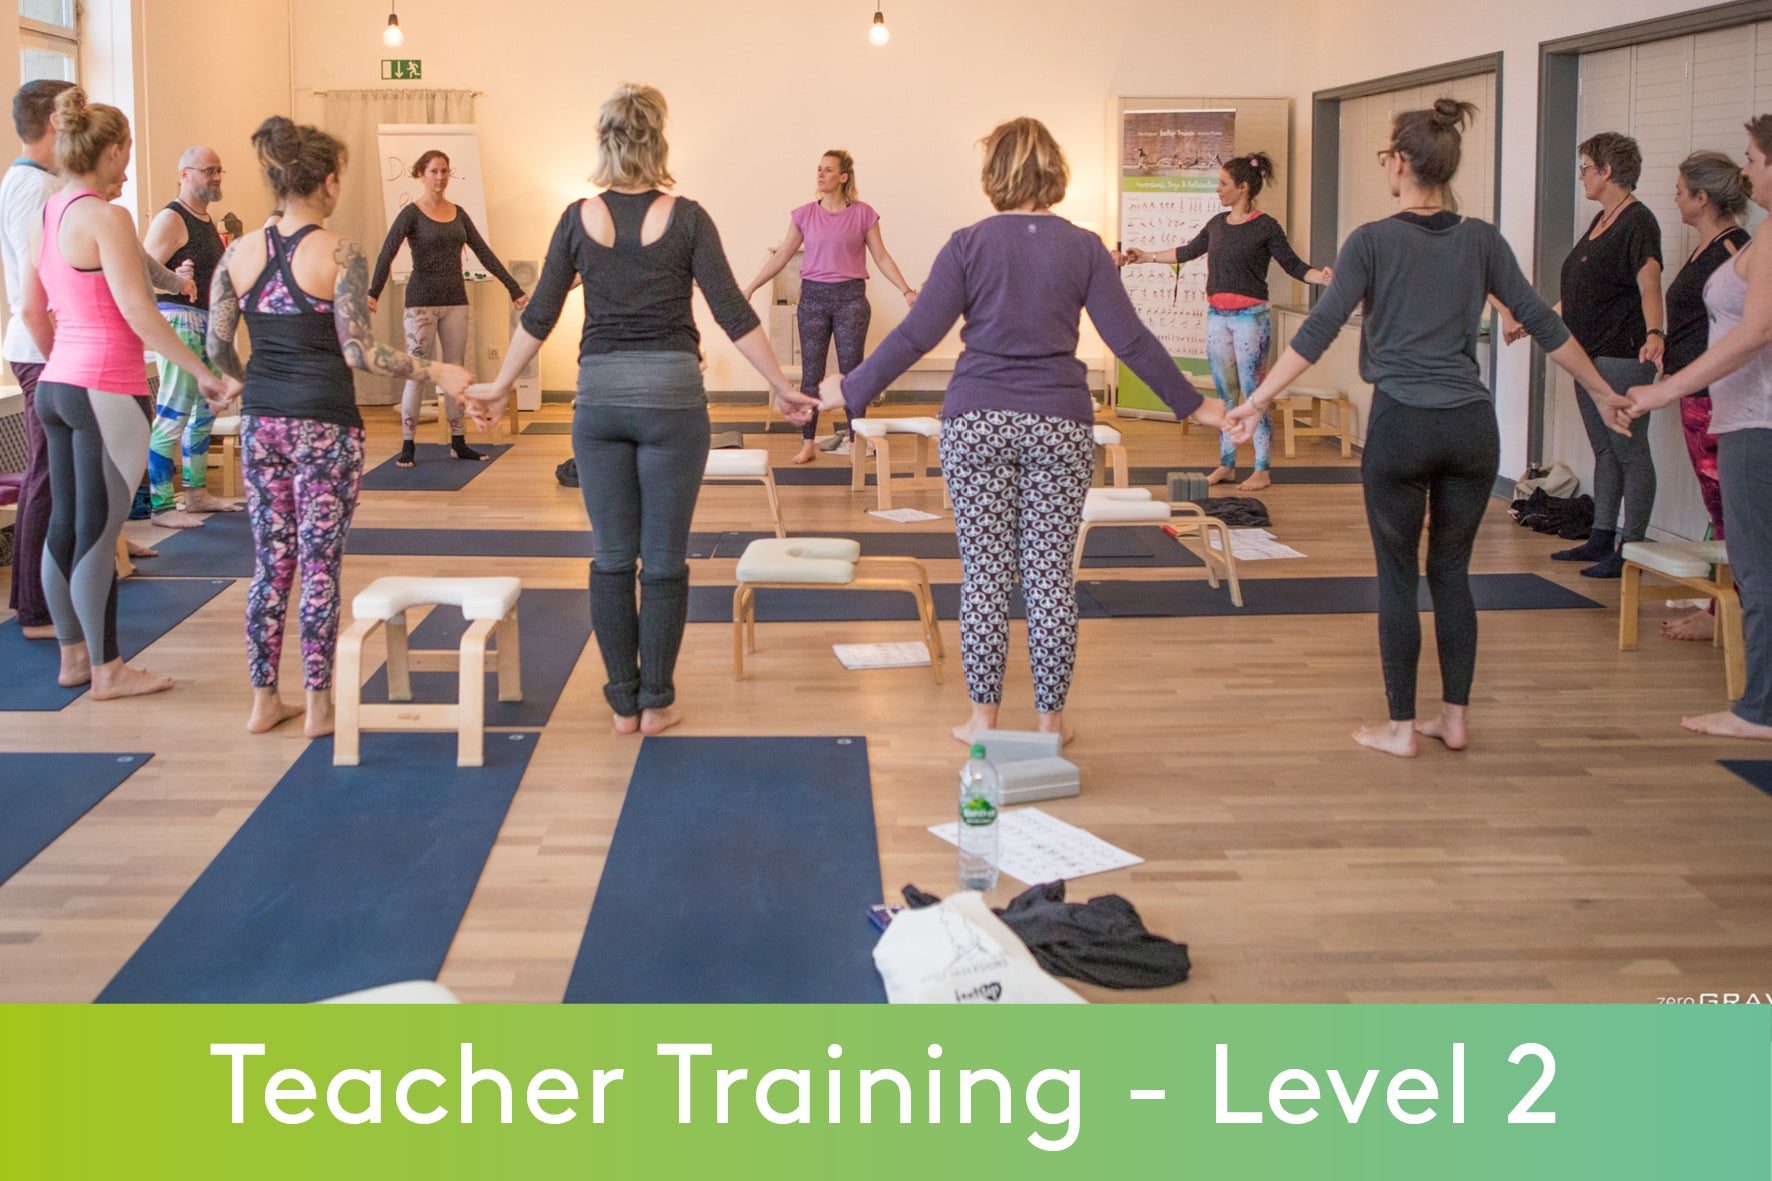 FeetUp® Teacher Training Level 2 - Bad Meinberg 16th -18th of October 2020 (without Accommodation)